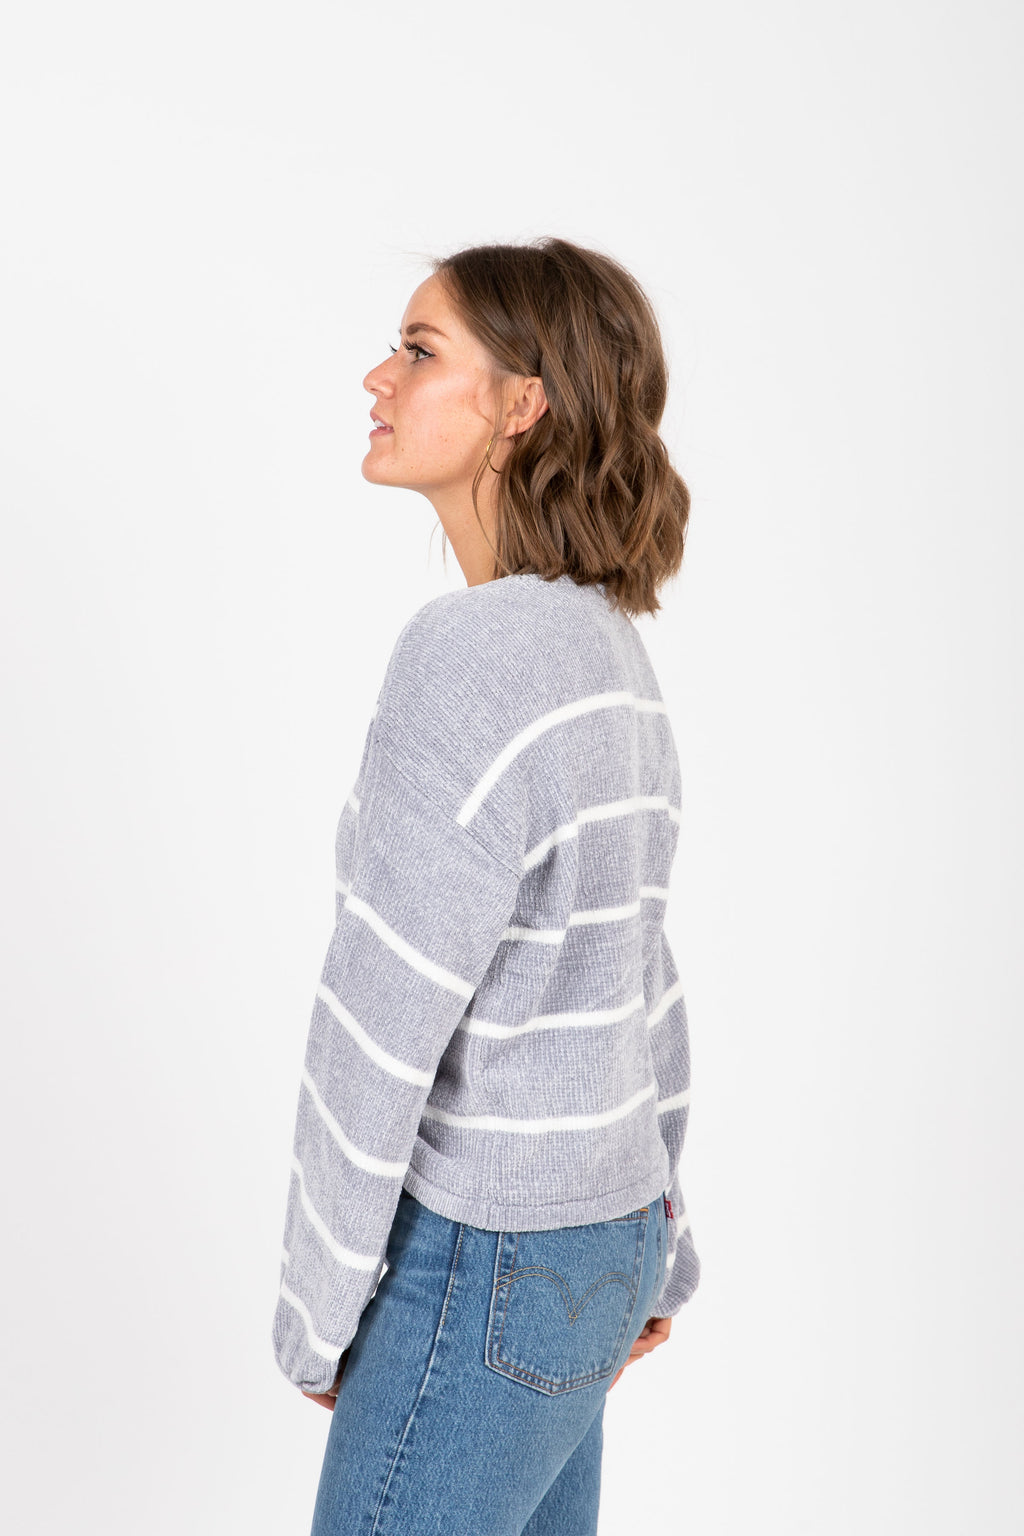 The Edge Cozy Striped Sweater in Grey, studio shoot; side view